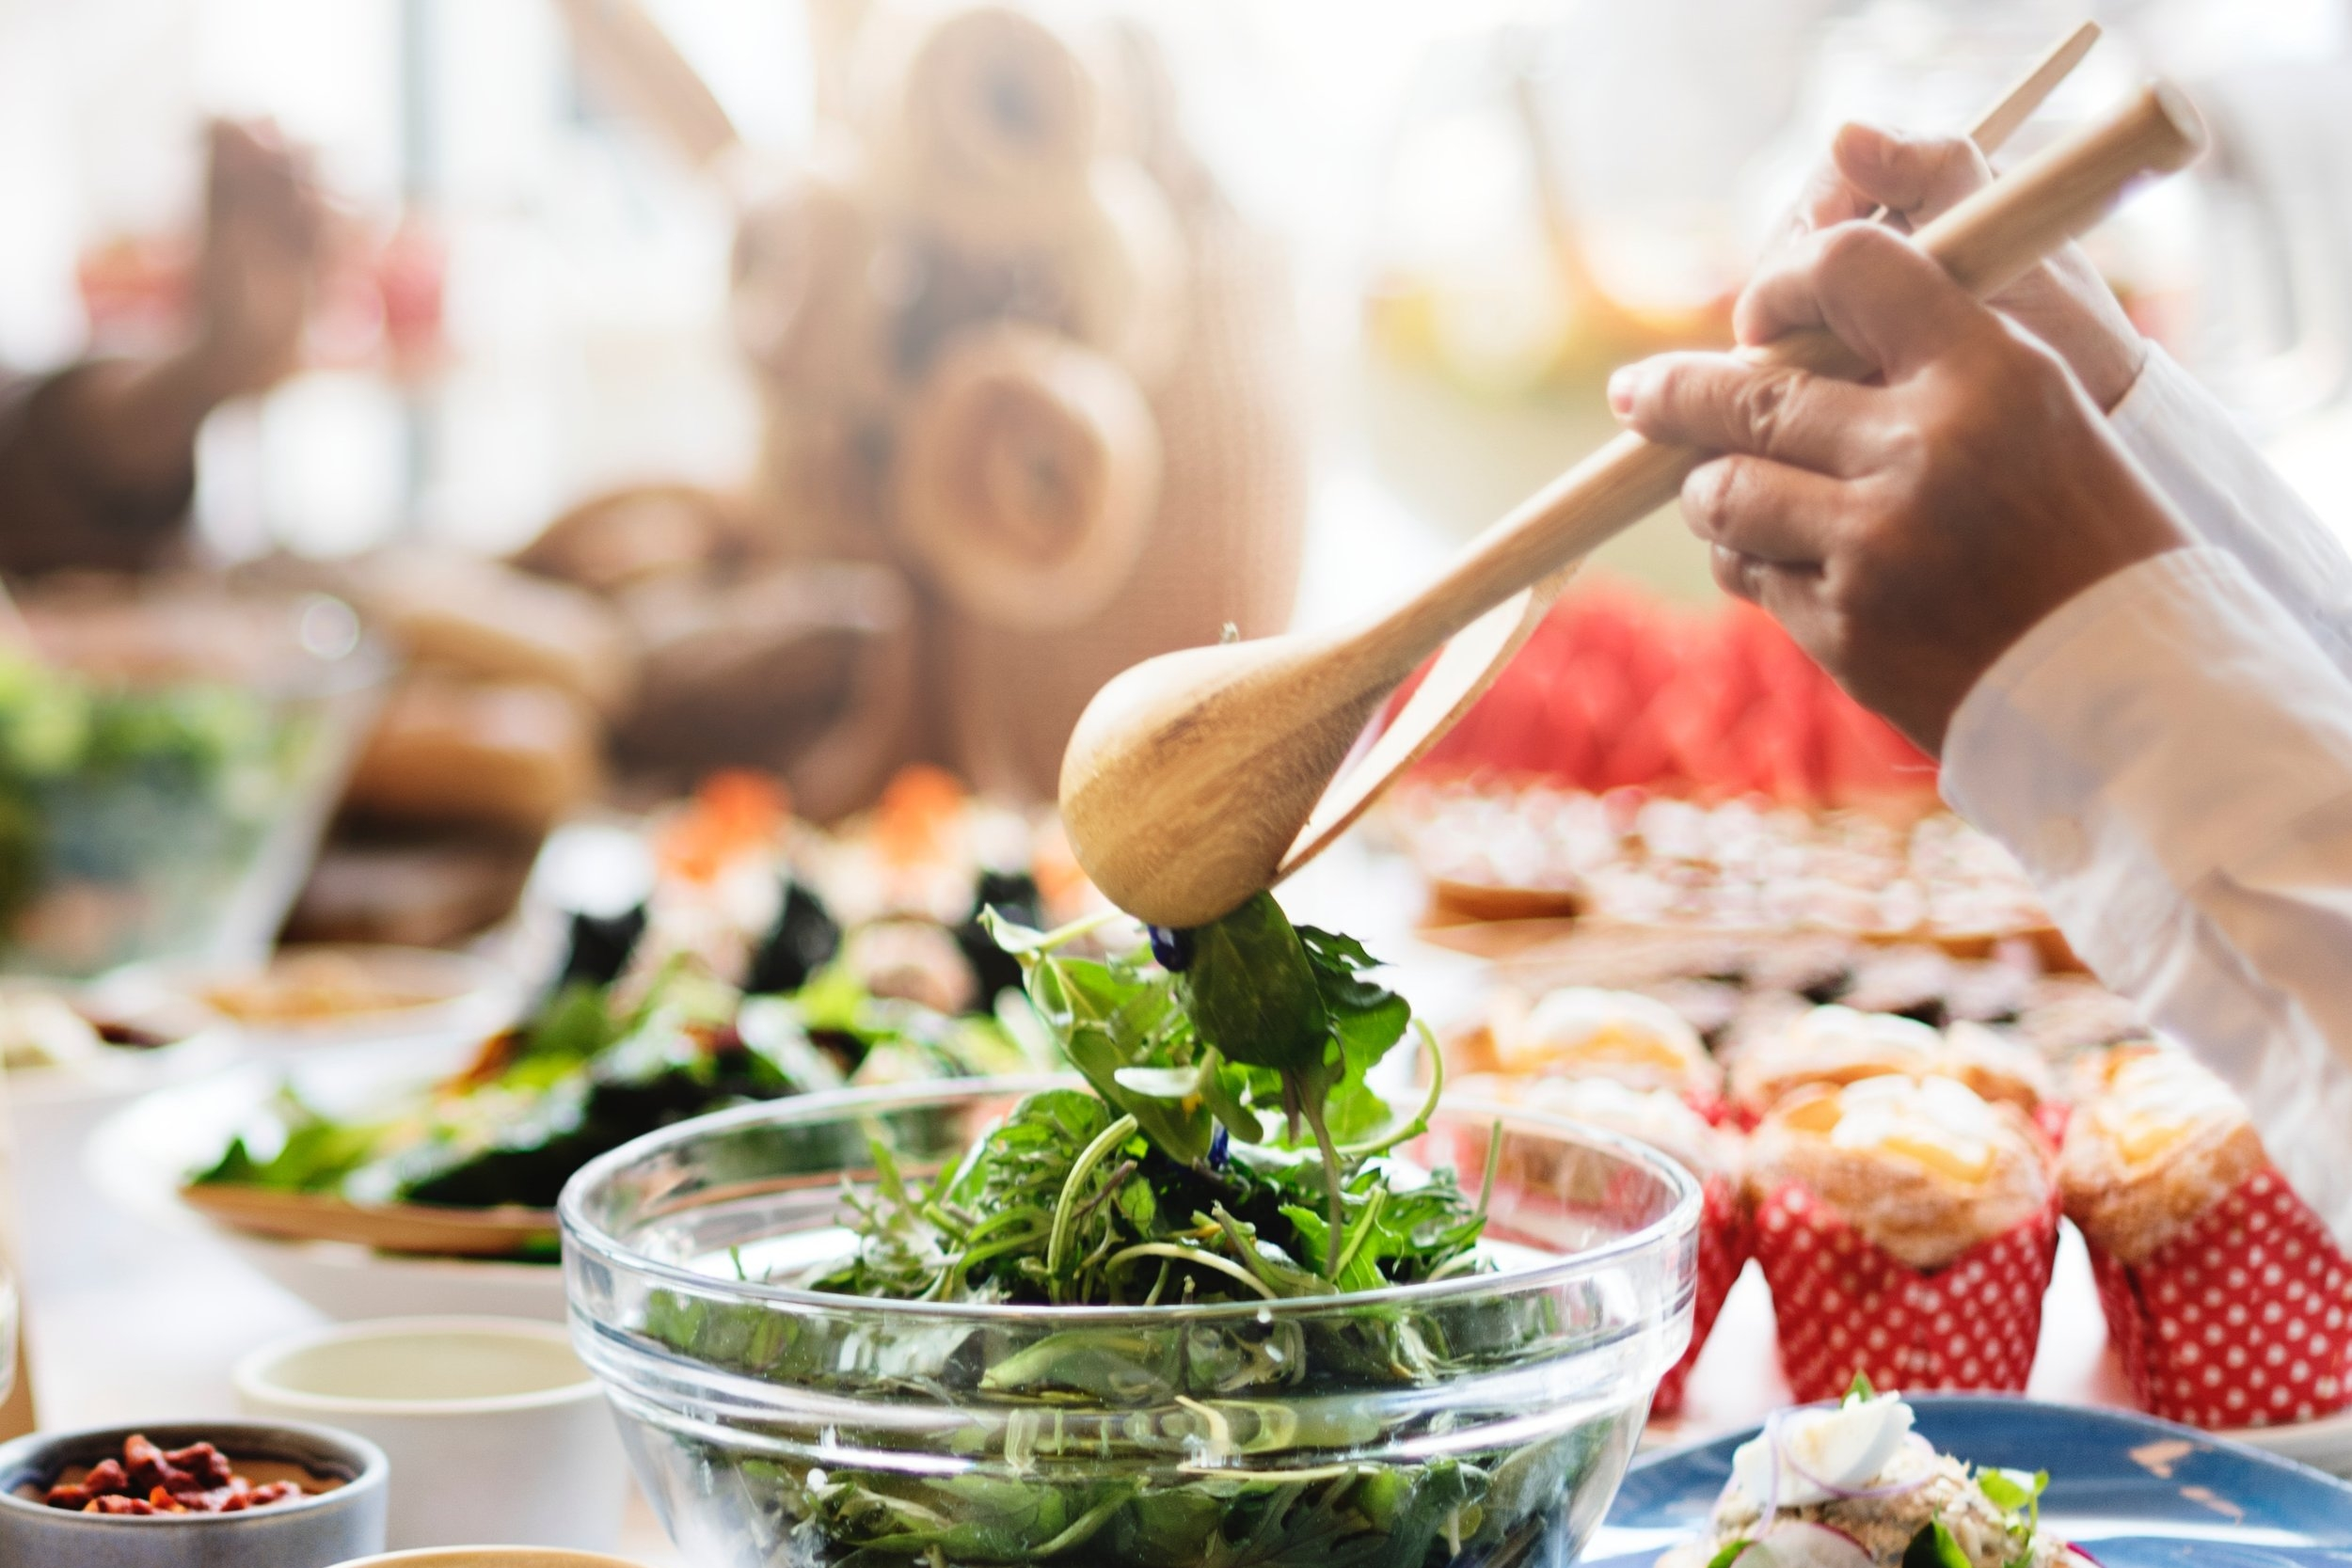 a chef tosses a salad with wooden spoons on a table filled with breakfast foods